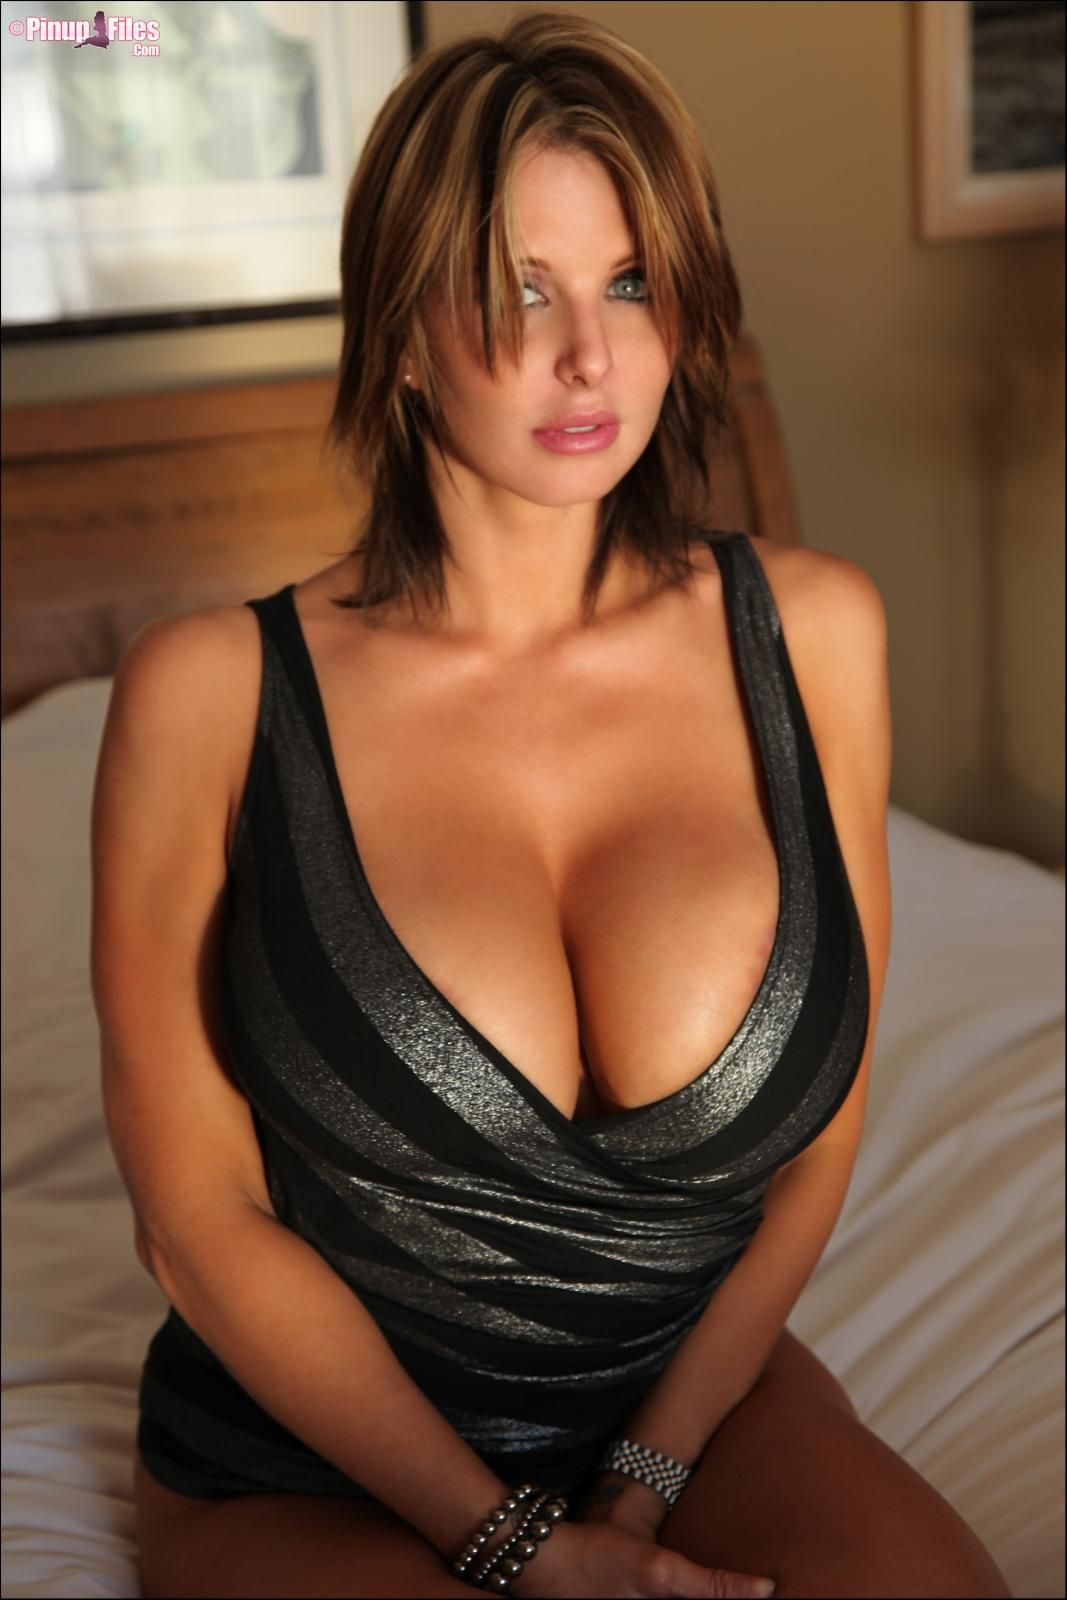 Ready for very hottest brunette milf videos ficker, geile